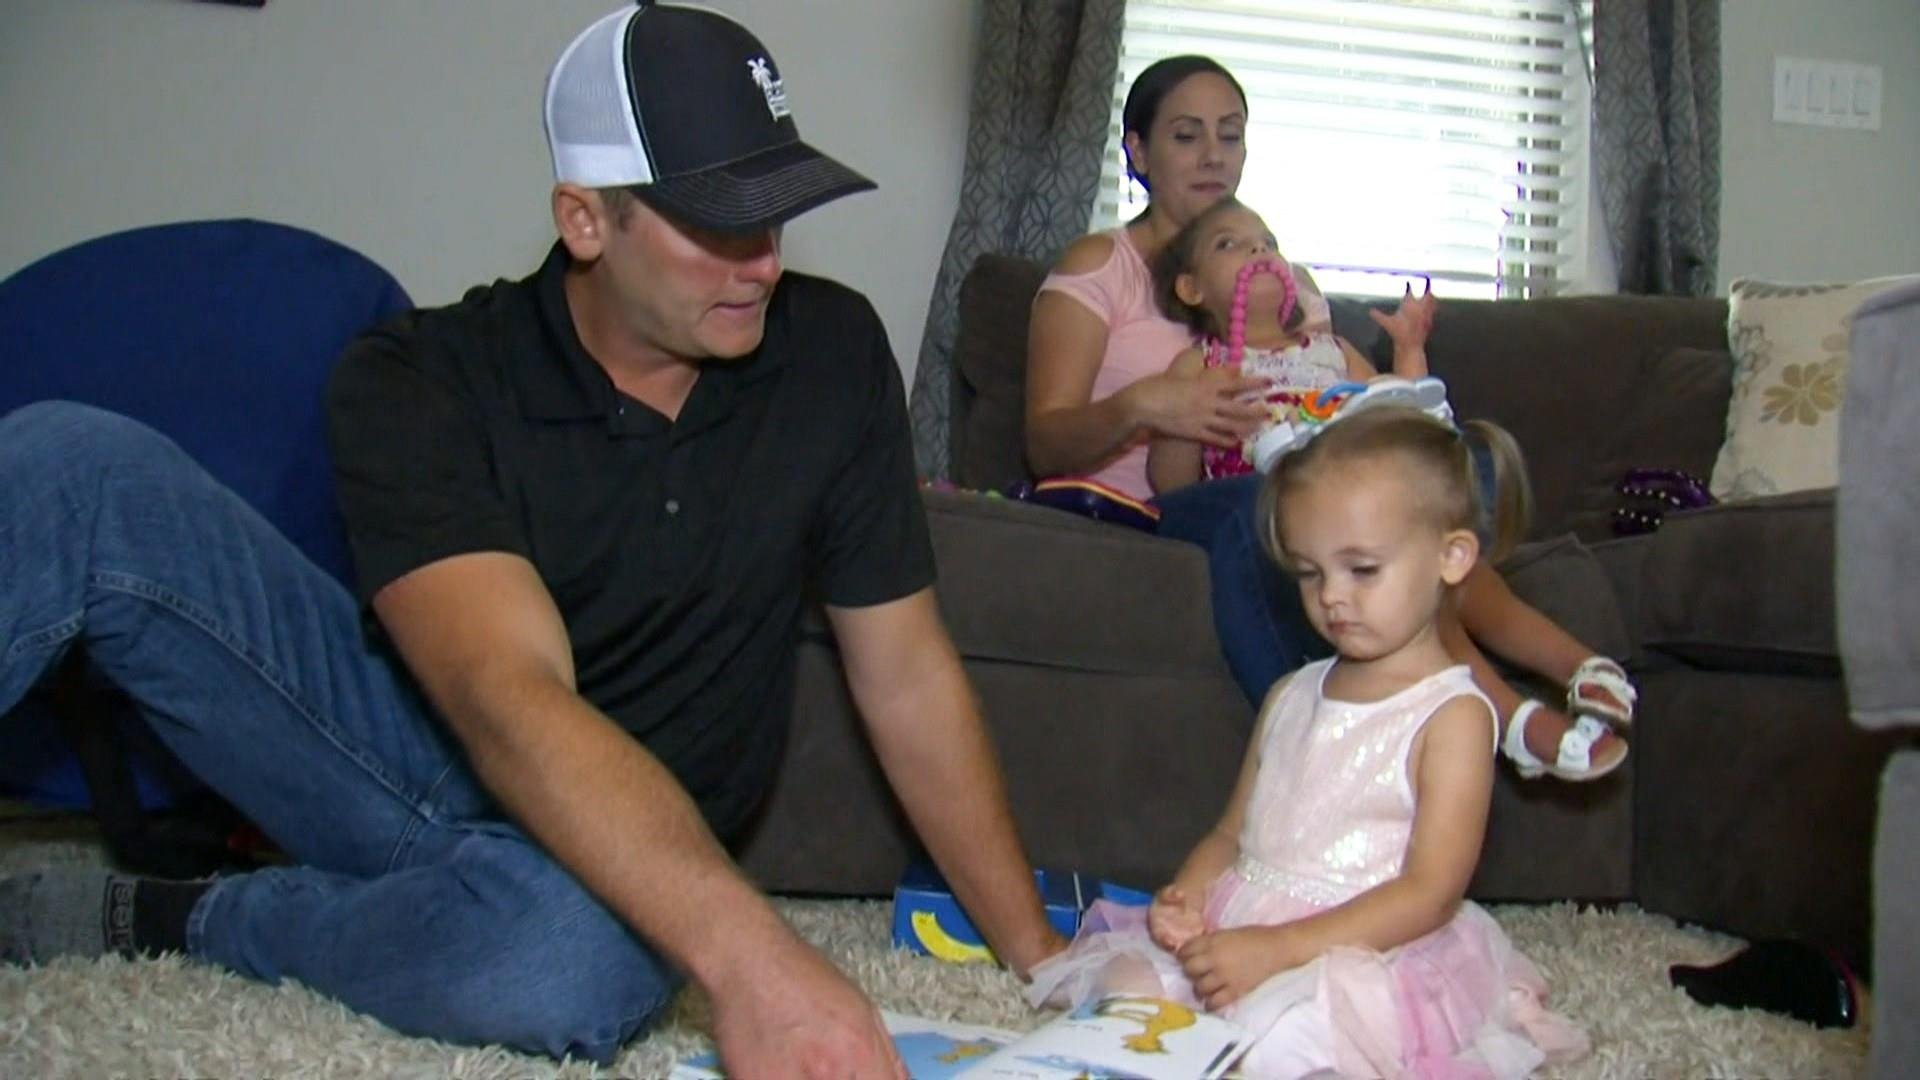 Texas Parents Consider Divorce to Afford Child's Health Care